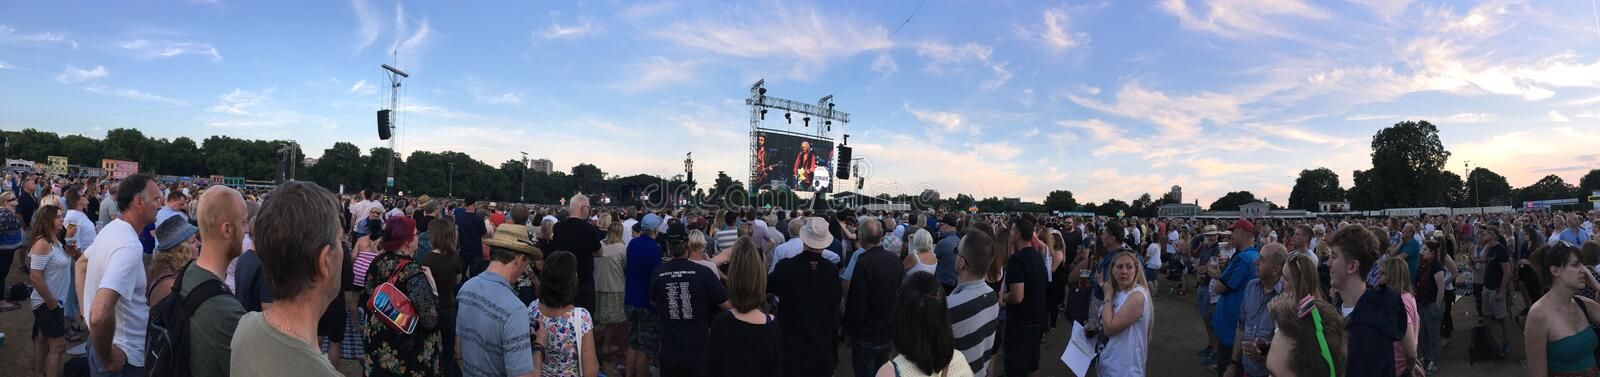 British Summer Time concert, London royalty free stock photos